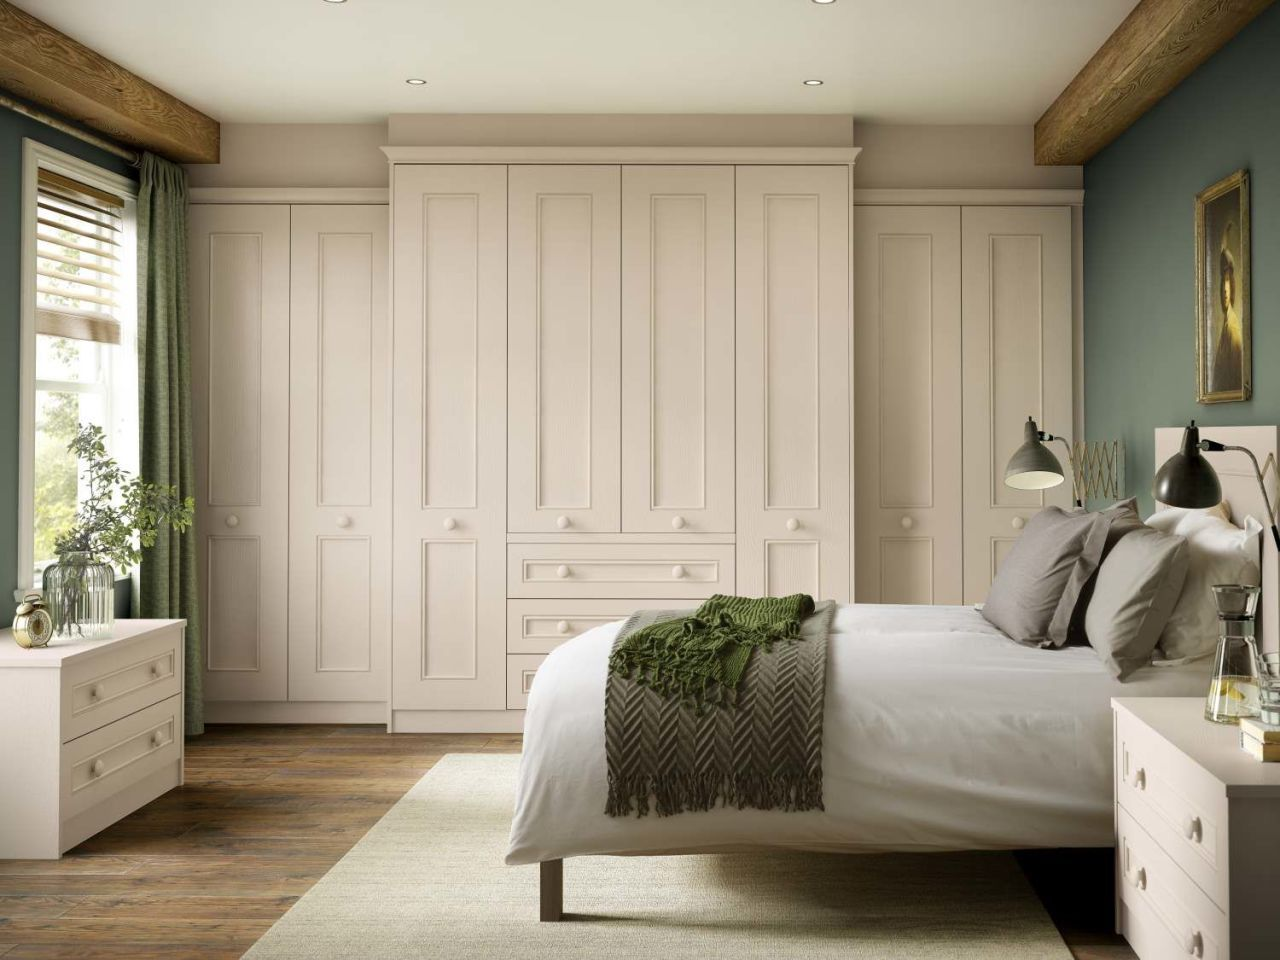 9 nifty ways to create more storage space in a small bedroom